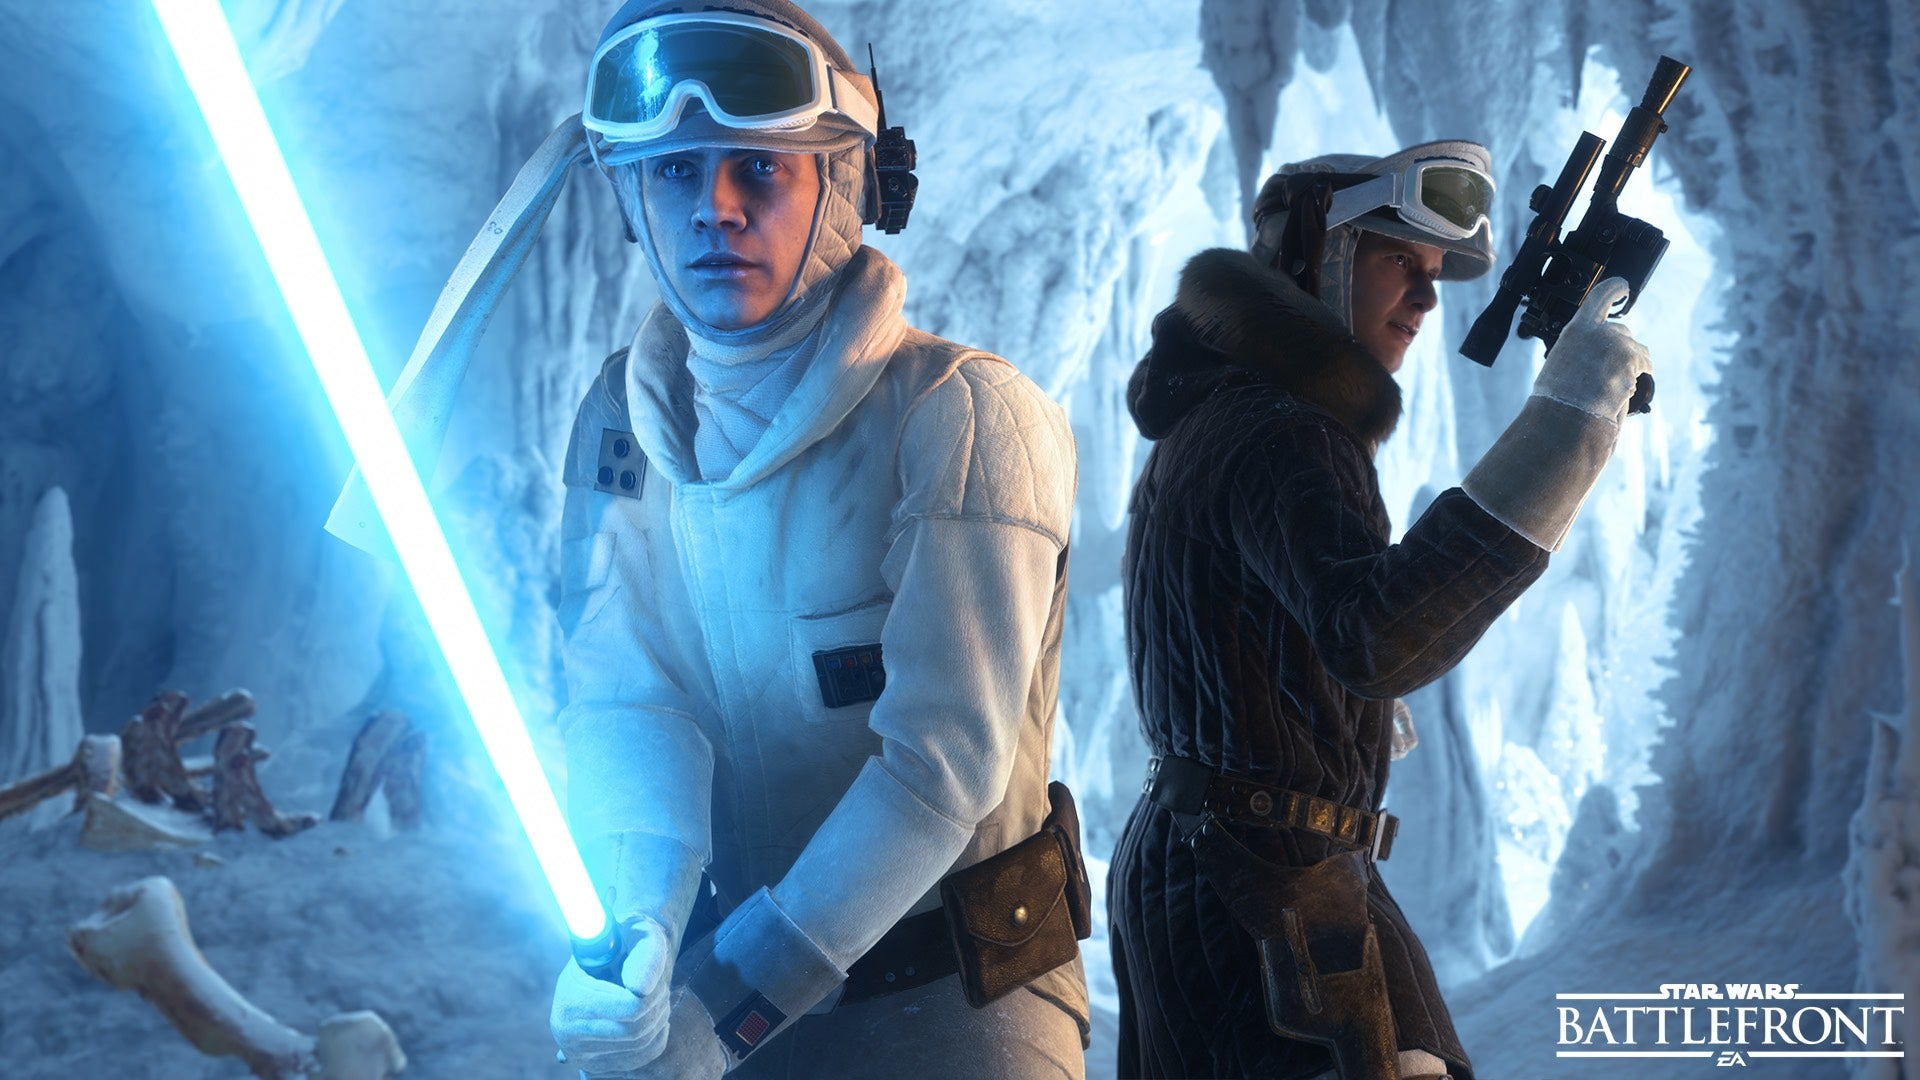 Star Wars: Battlefront Finally Getting New DLC This Week